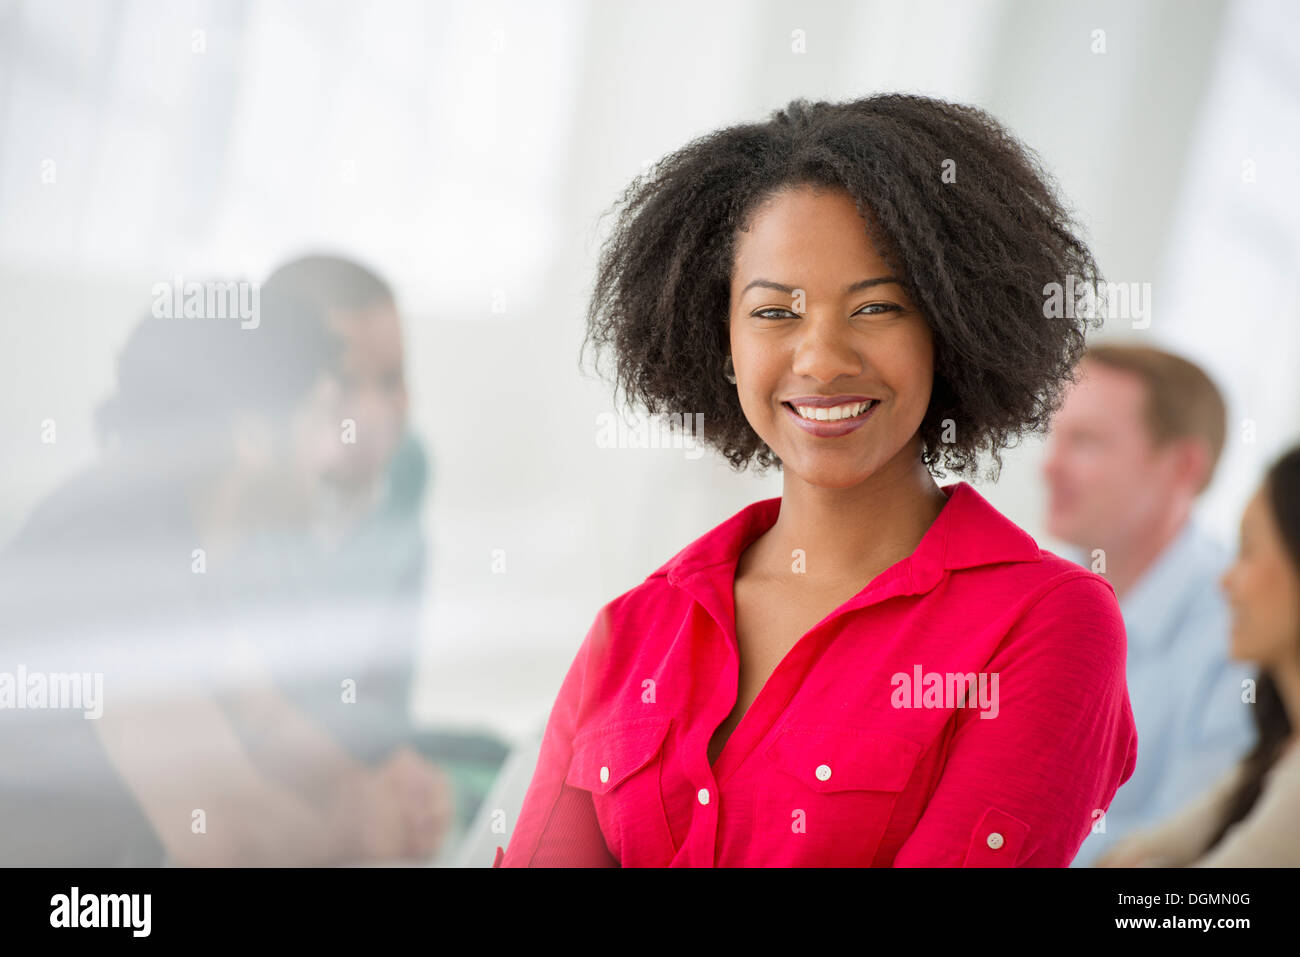 Business meeting. A confident businesswoman. Leader. - Stock Image